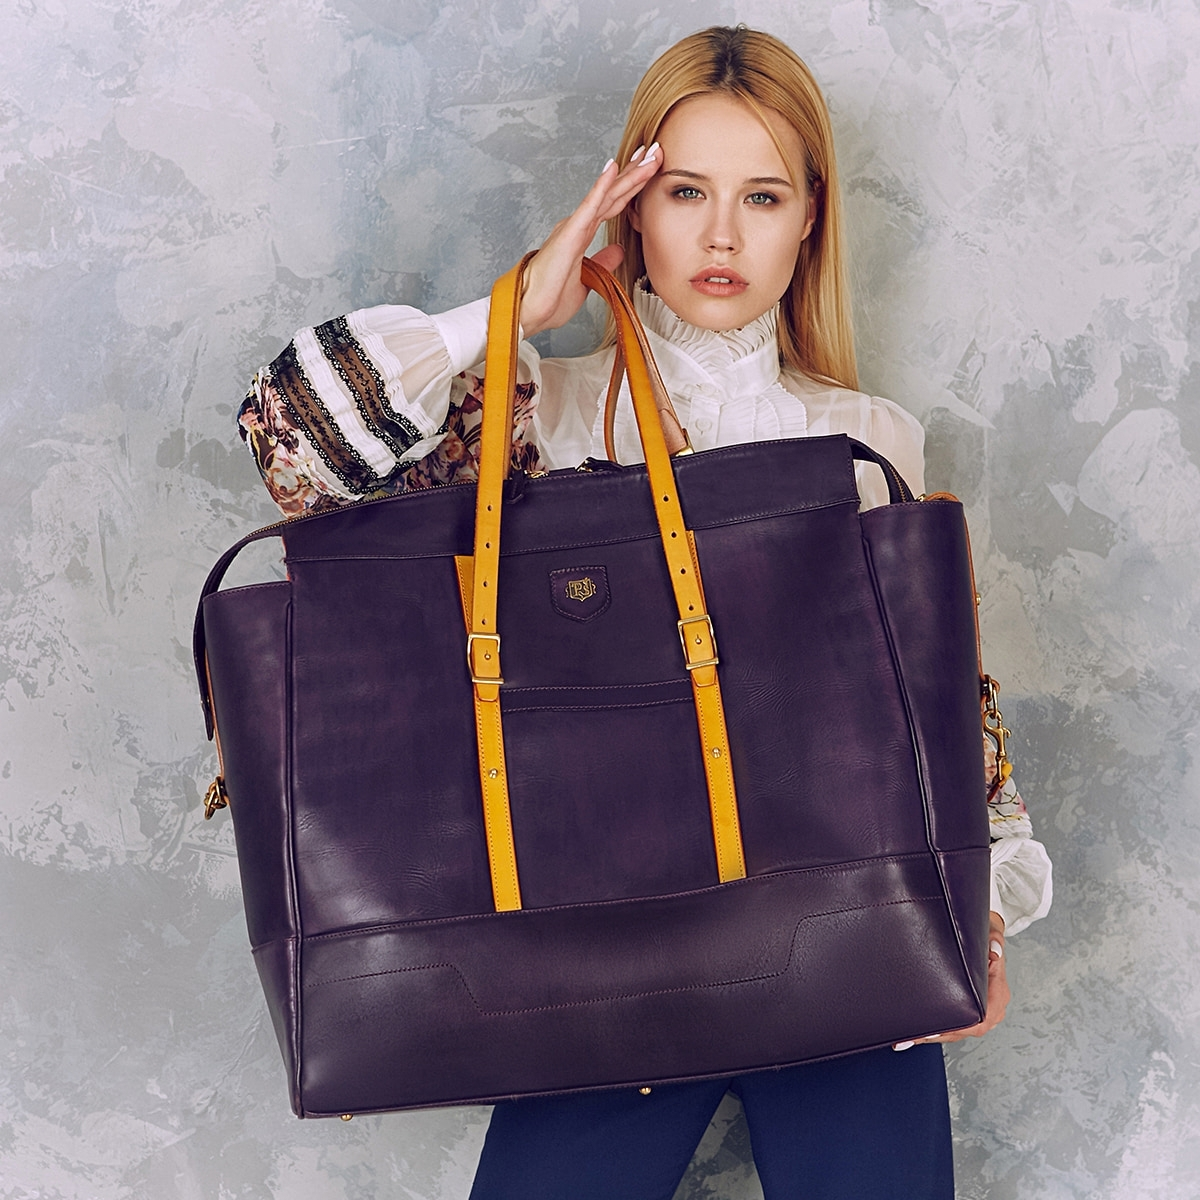 Travel bag WEEKENDER bright mustard & violet ink